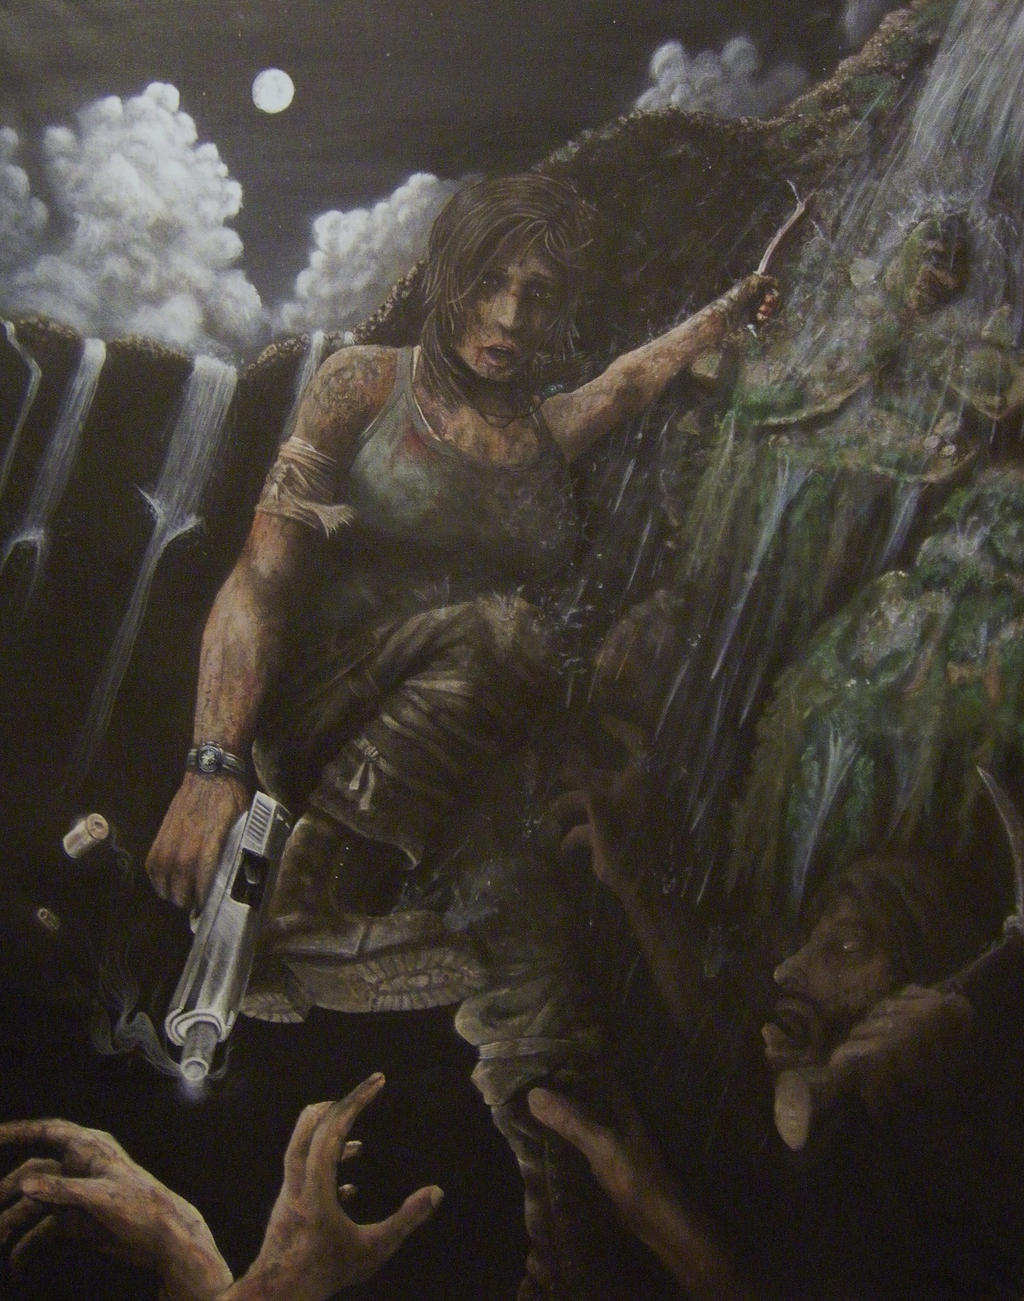 Cliffhanger - Acrylic Tomb Raider Painting by CurlyWurly808